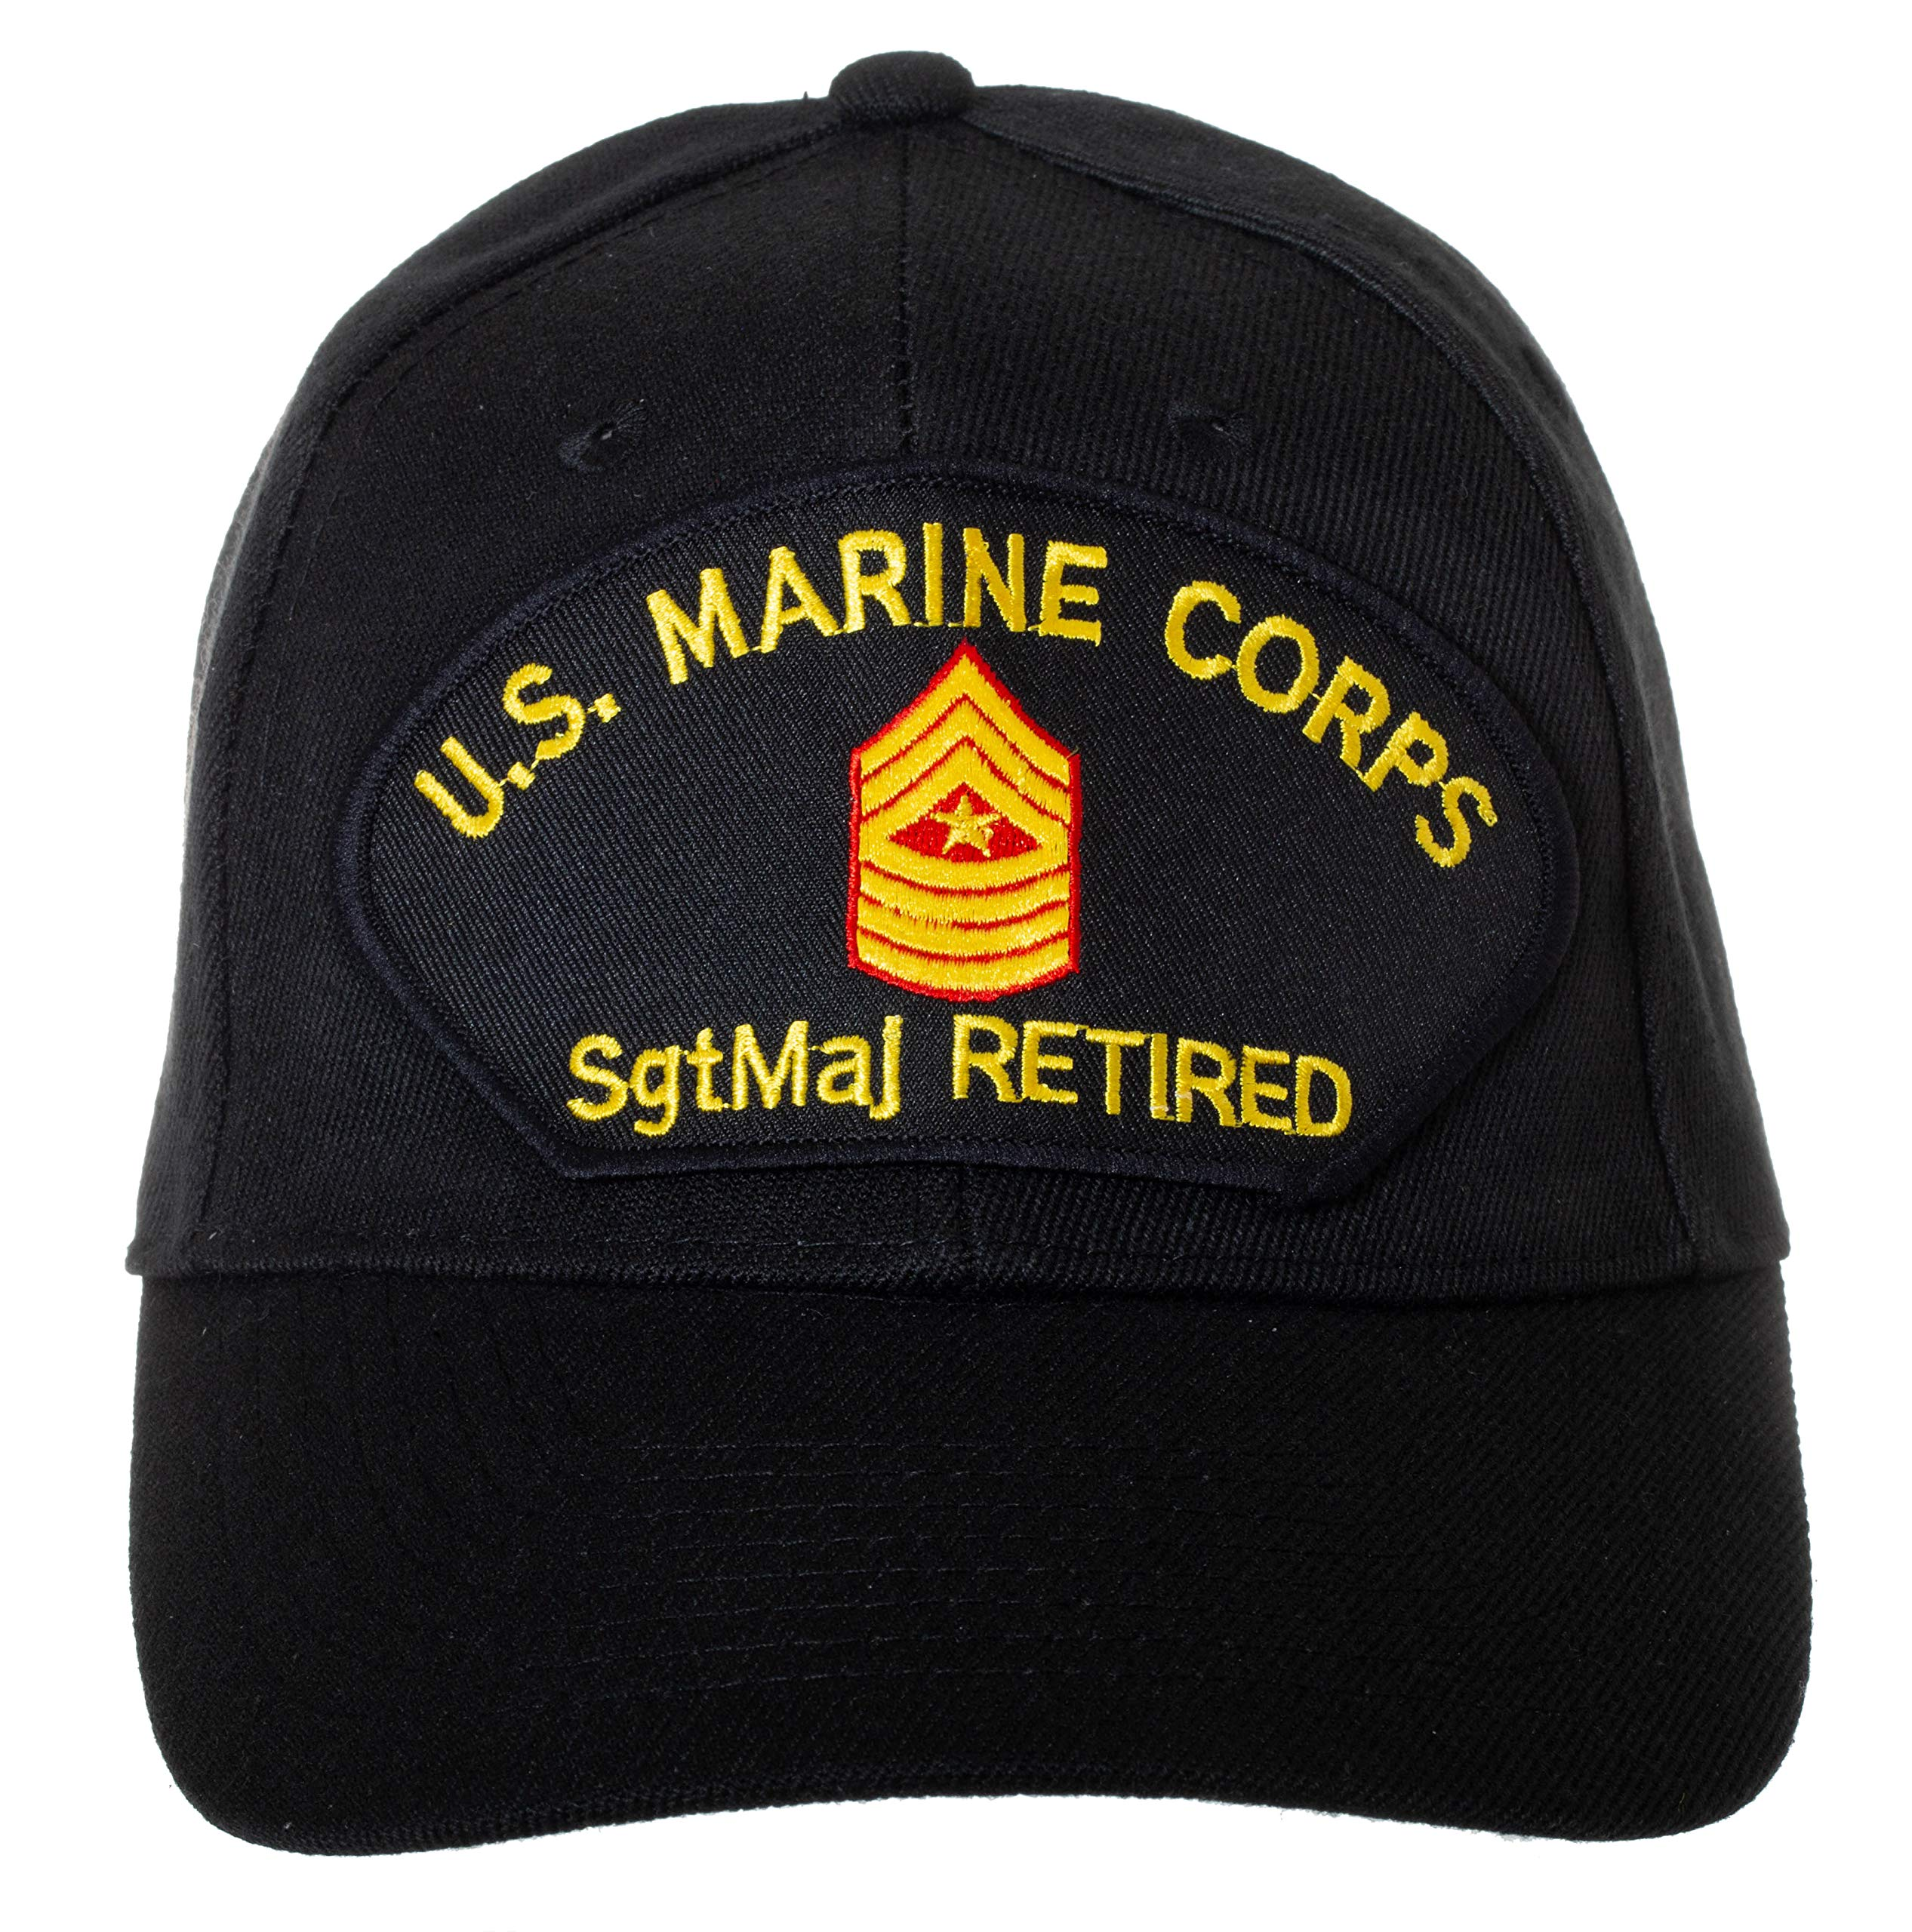 d7e9a0205d1 Artisan Owl US Marine Corps Retired Sergeant Major Embroidered Patch Black  Baseball Cap